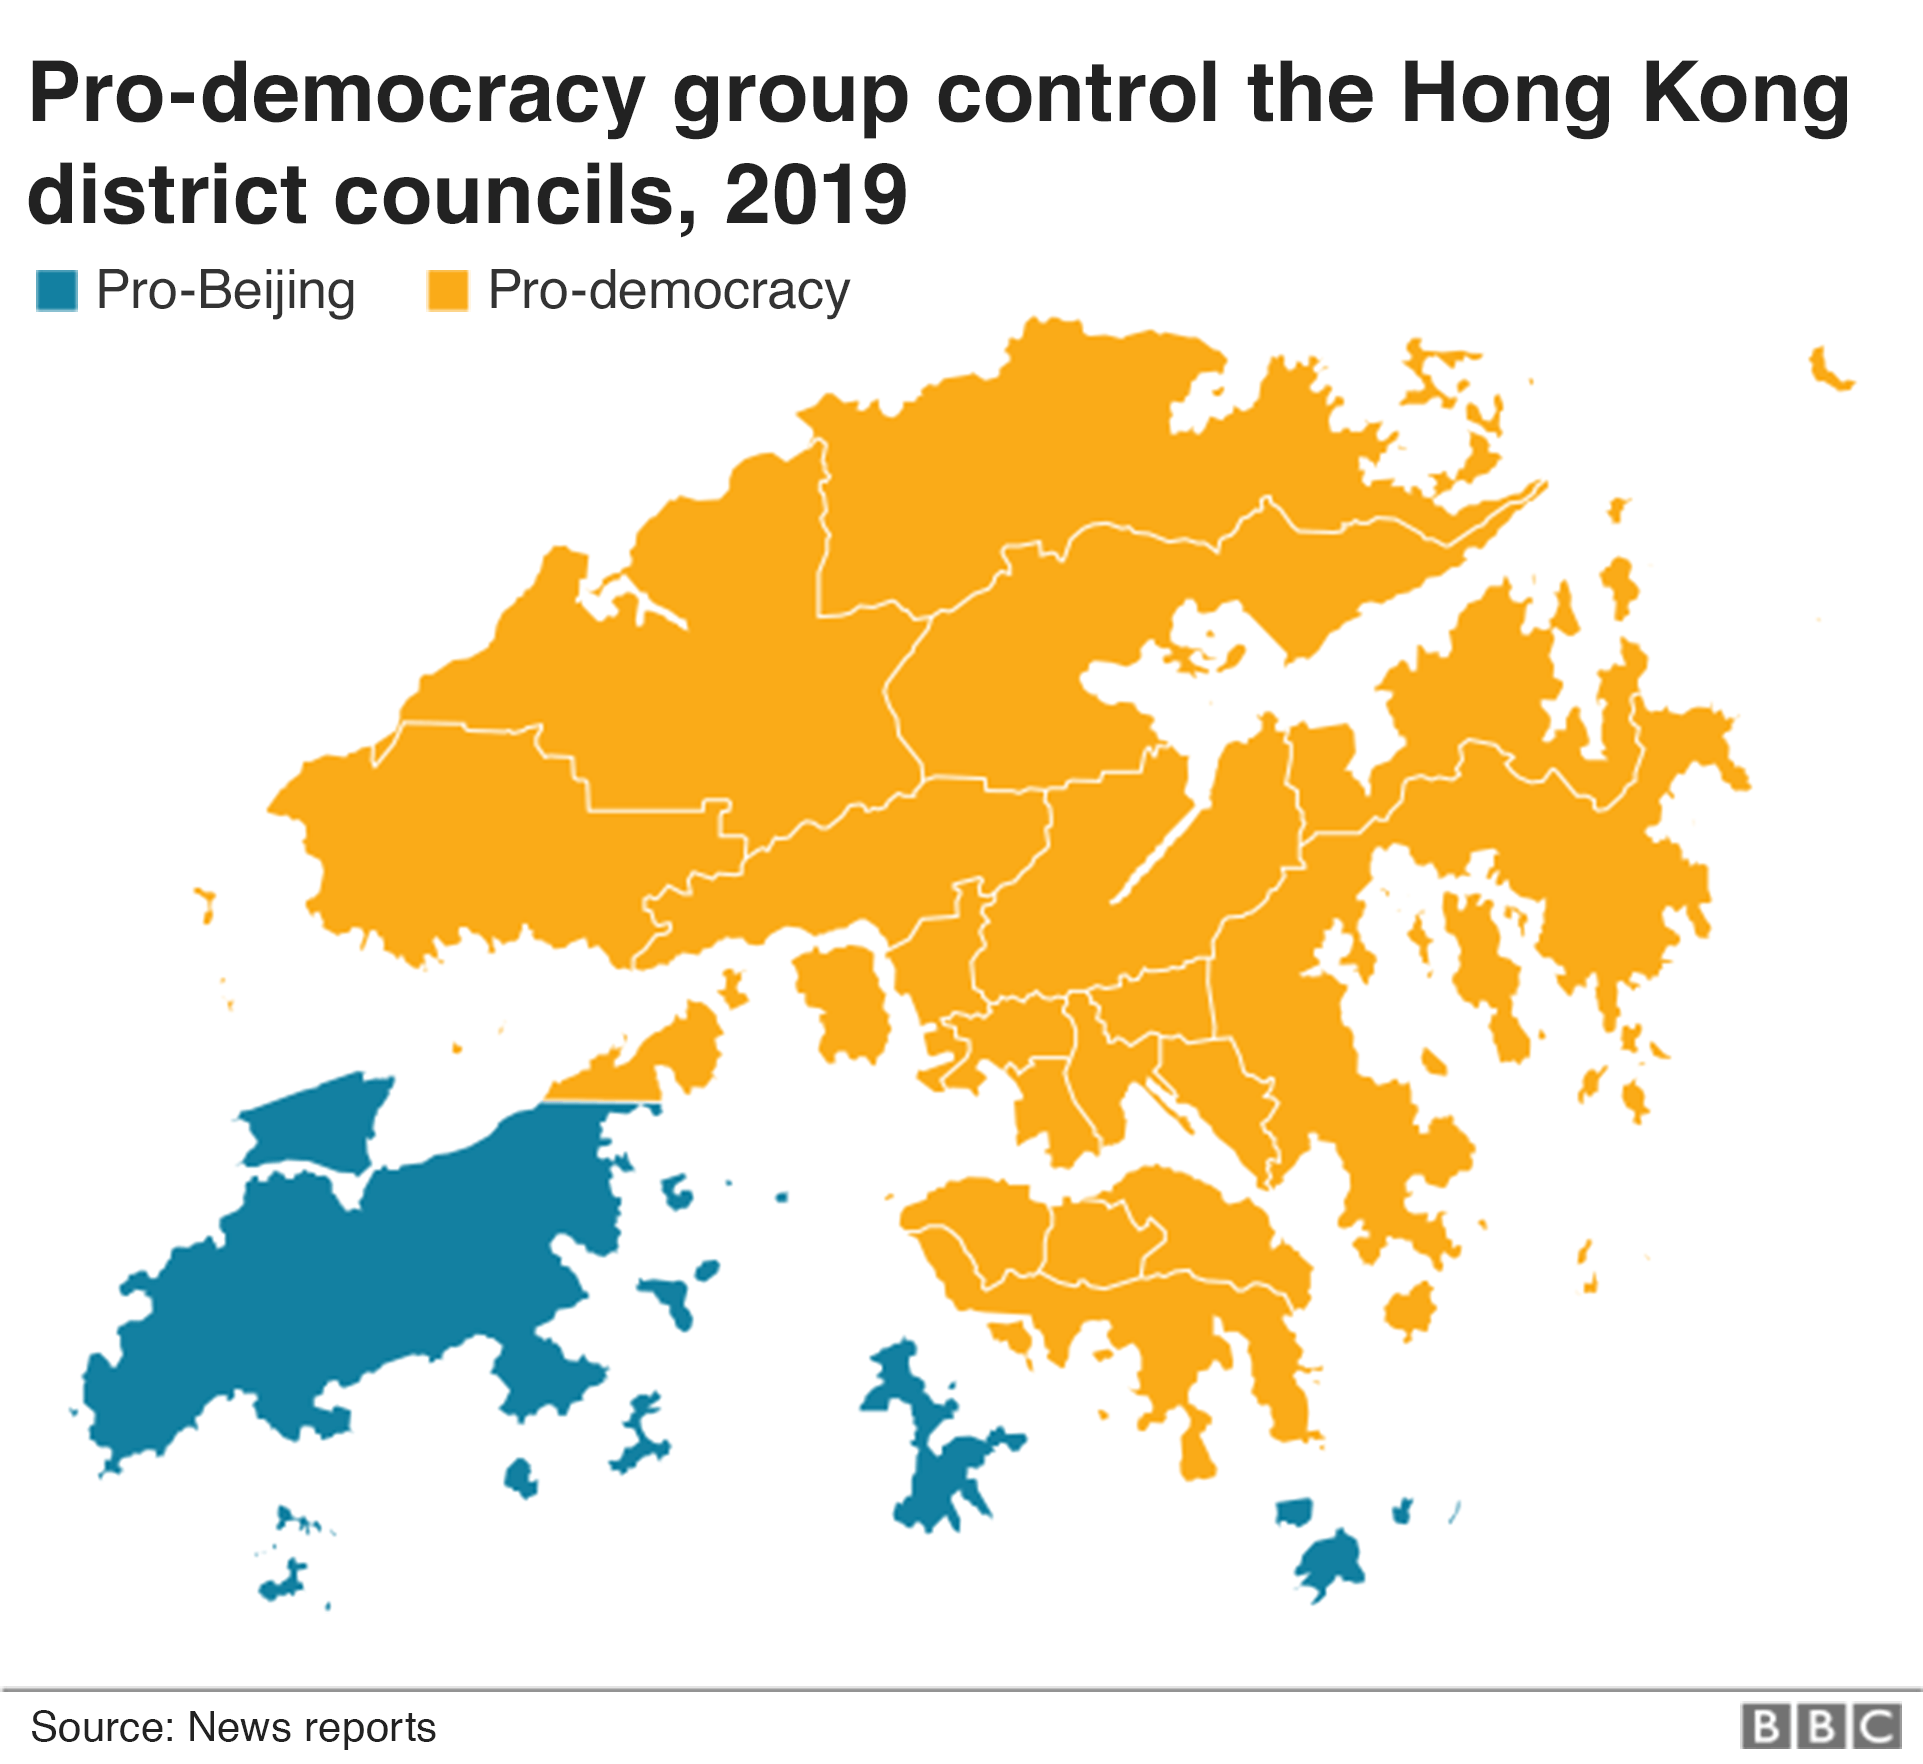 A map shows control of the district councils in 2019